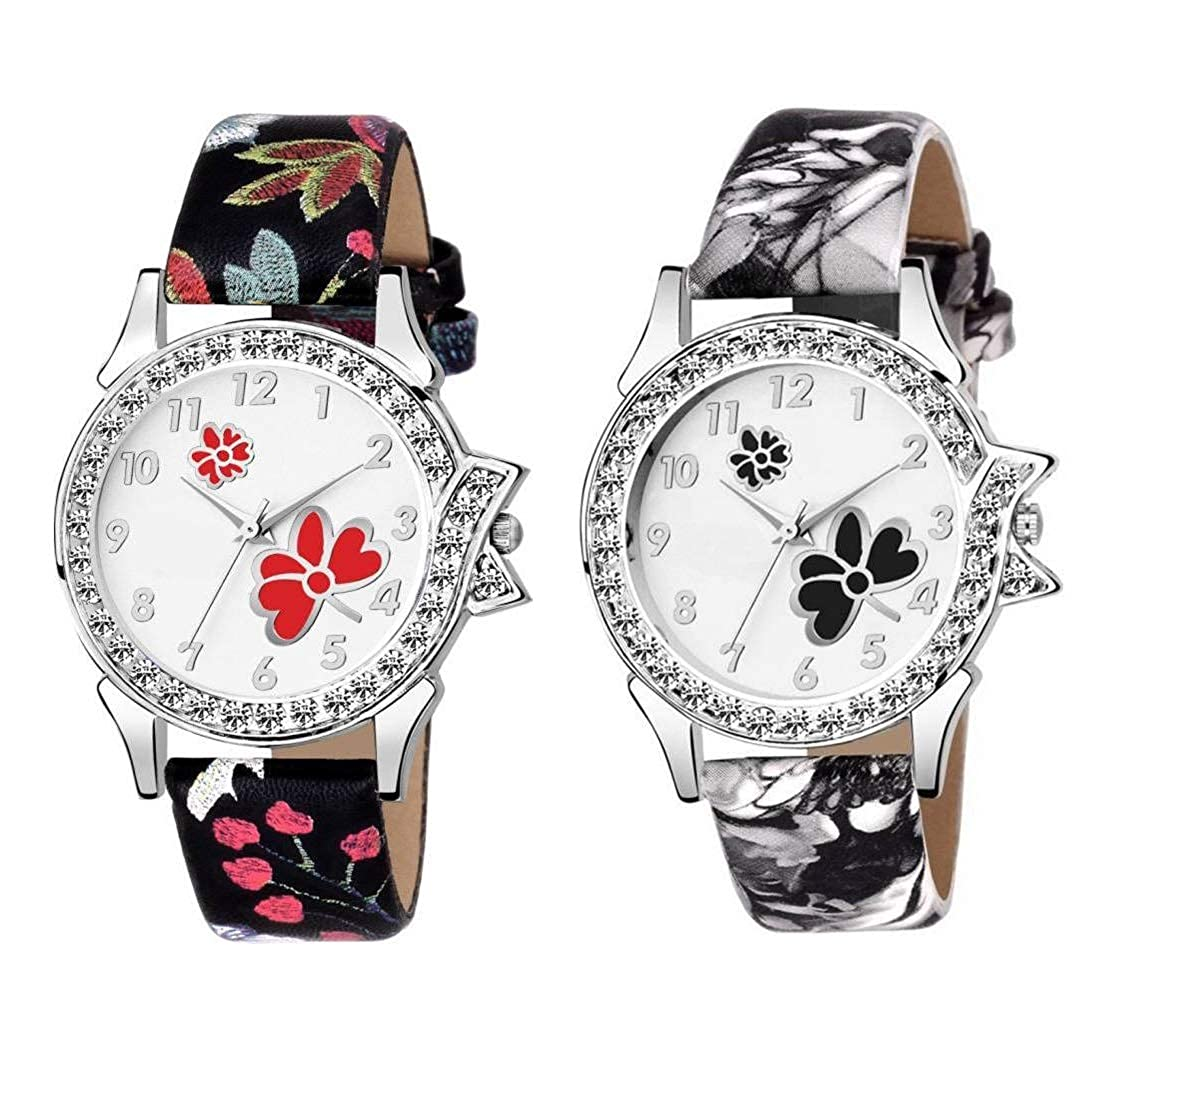 e75693637 Buy SWADESI STUFF Quartz Movement Analogue Multicolour Dial Leather Strap Women's  Watch - Combo of 2 Online at Low Prices in India - Amazon.in